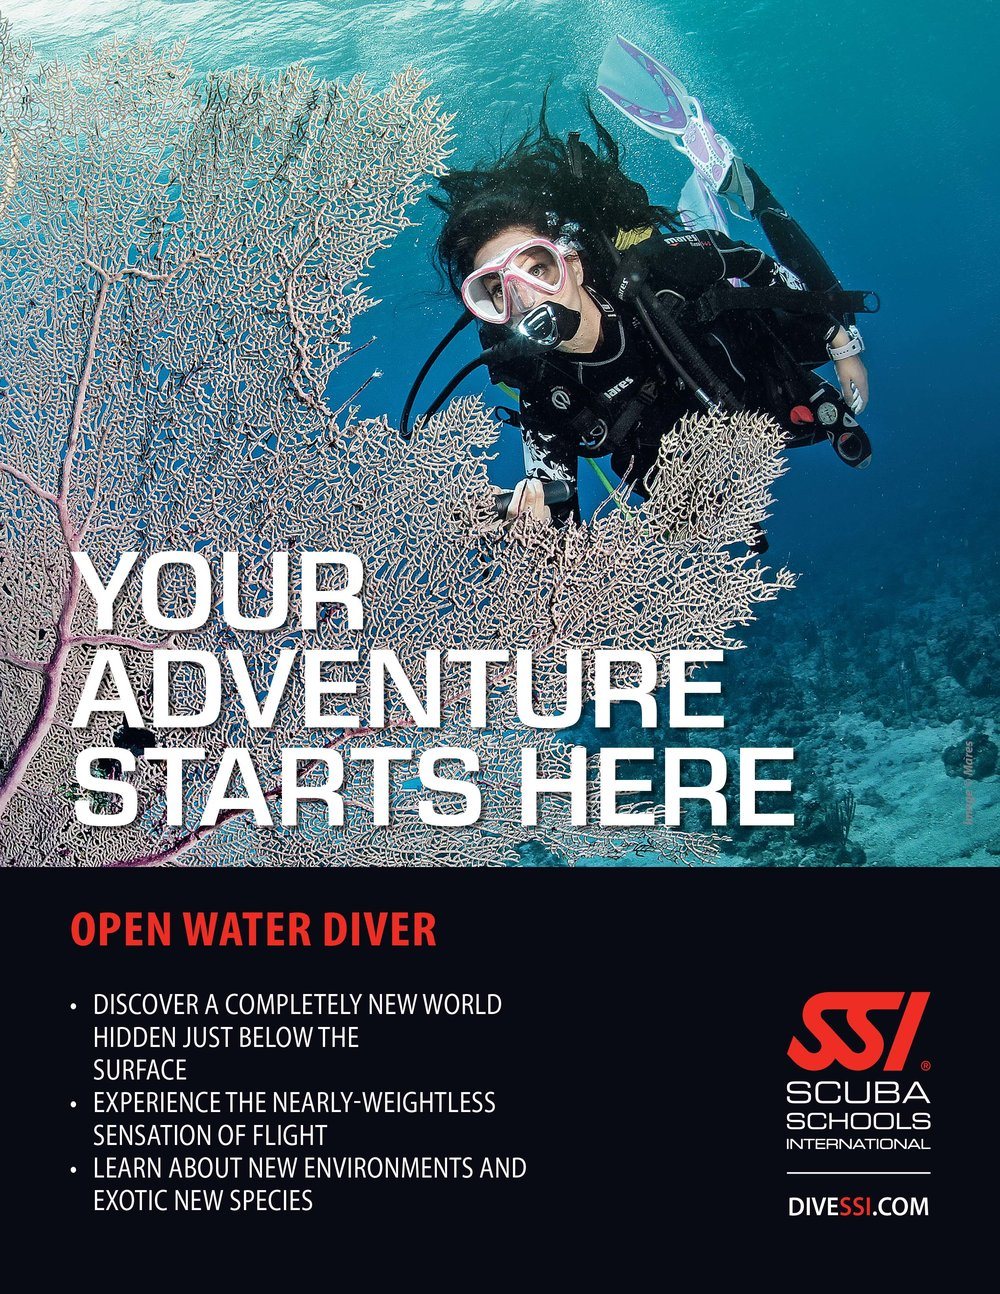 These globally-recognized certification programs are the best way to begin your life-long adventure as a certified scuba diver.  test the waters with our Try SCUBA course or take the plunge and become a fully certified diver with the open water Diver course.